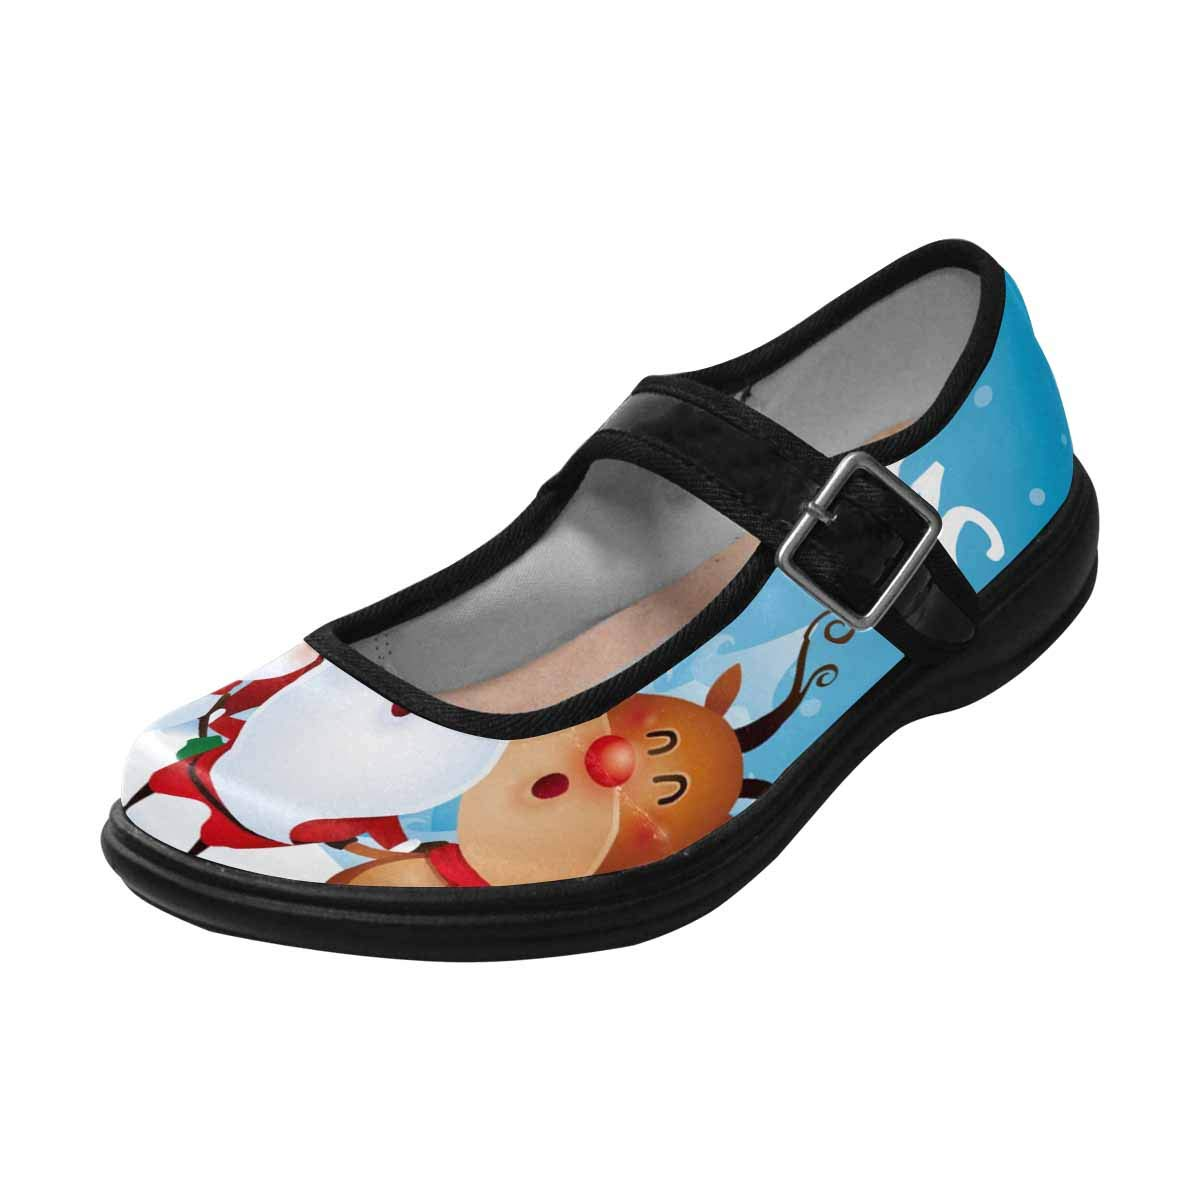 INTERESTPRINT Womens Slip-Resistant Mary Jane Flats for Dr Scholls Merry Christmas Happy Christmas Companions